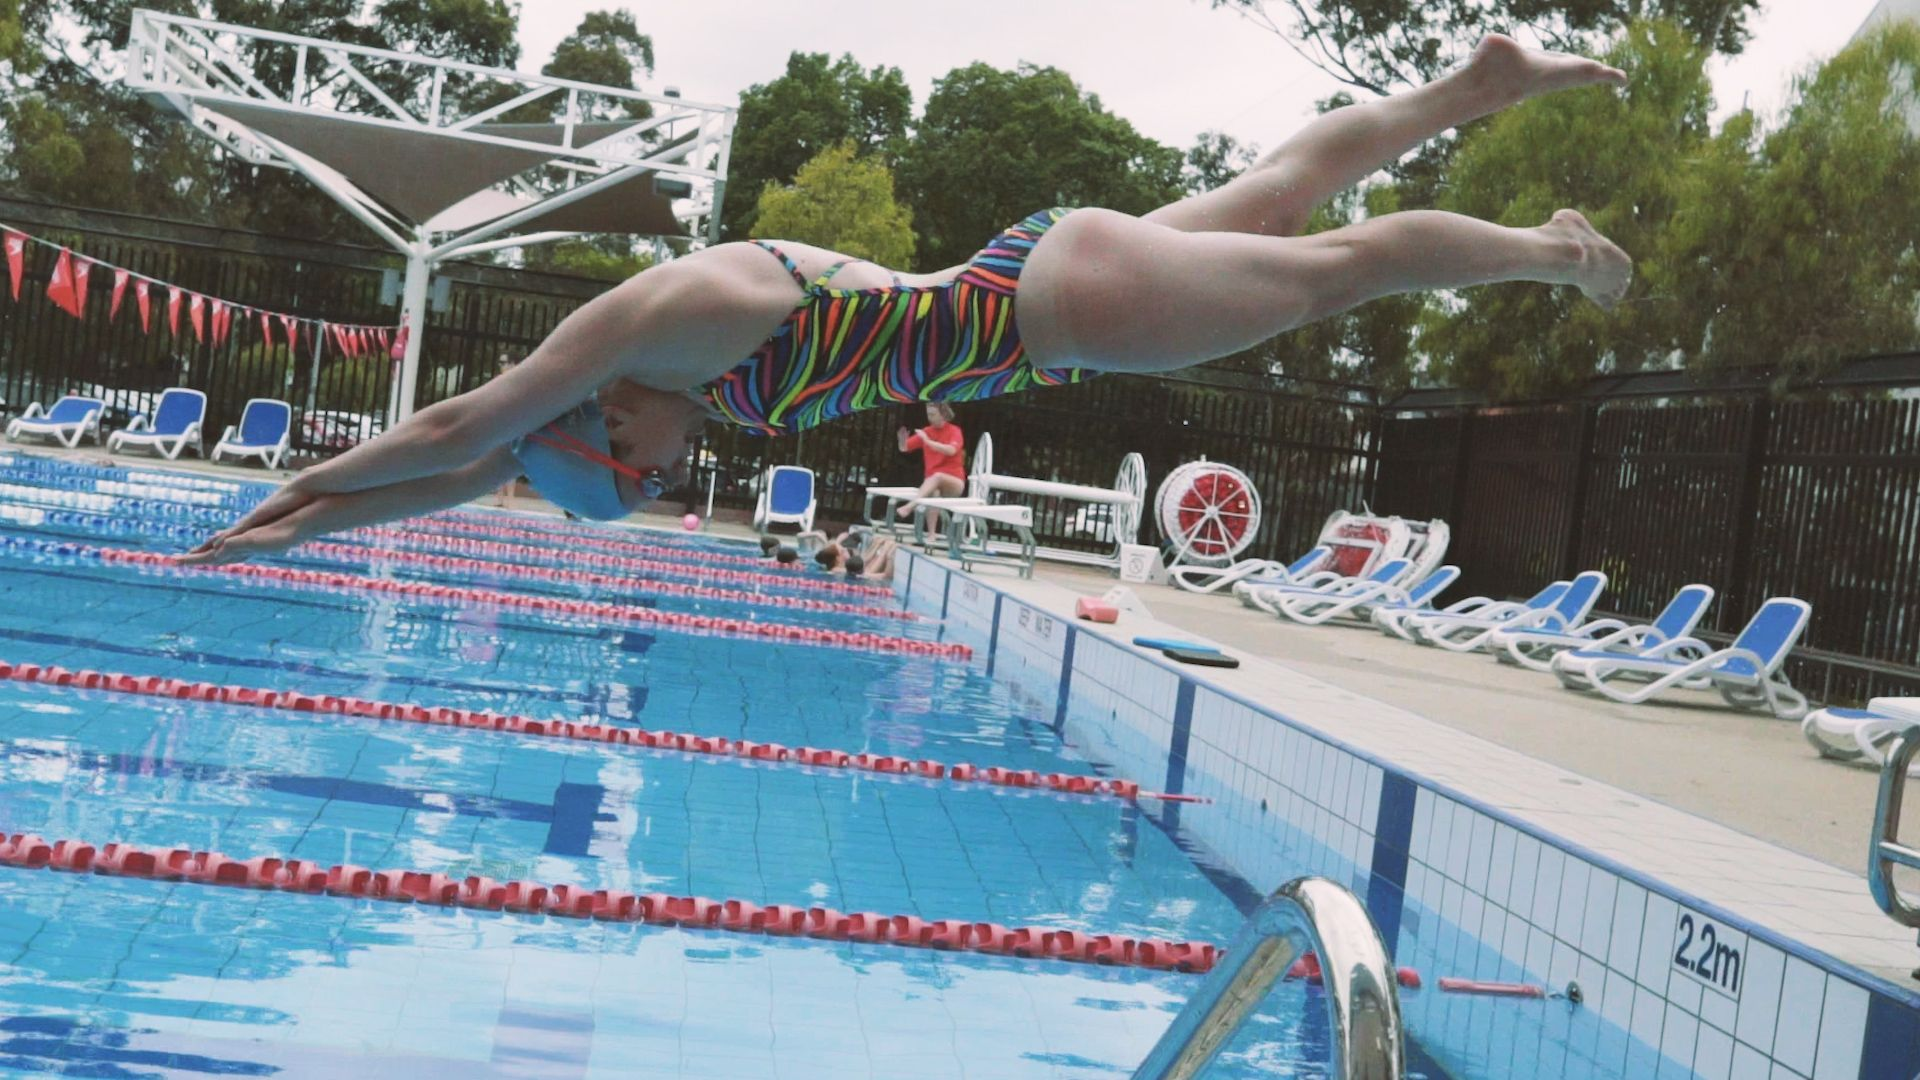 Female student dives into a pool at the open air Hawthorn Aquatic Centre